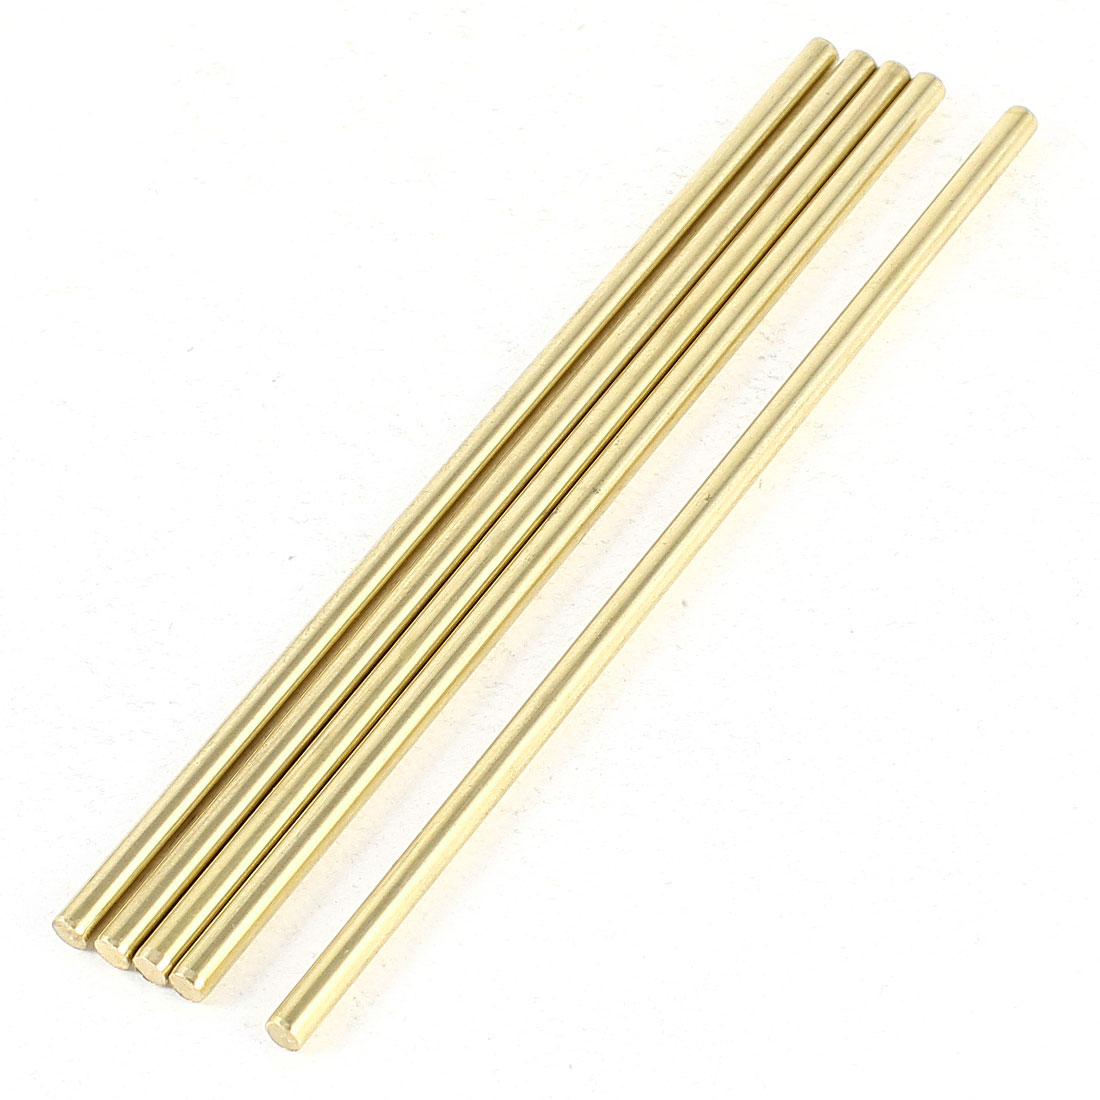 5 Pcs Car Helicopter Model Toy DIY Brass Axles Rod Bars 3mm x 100mm